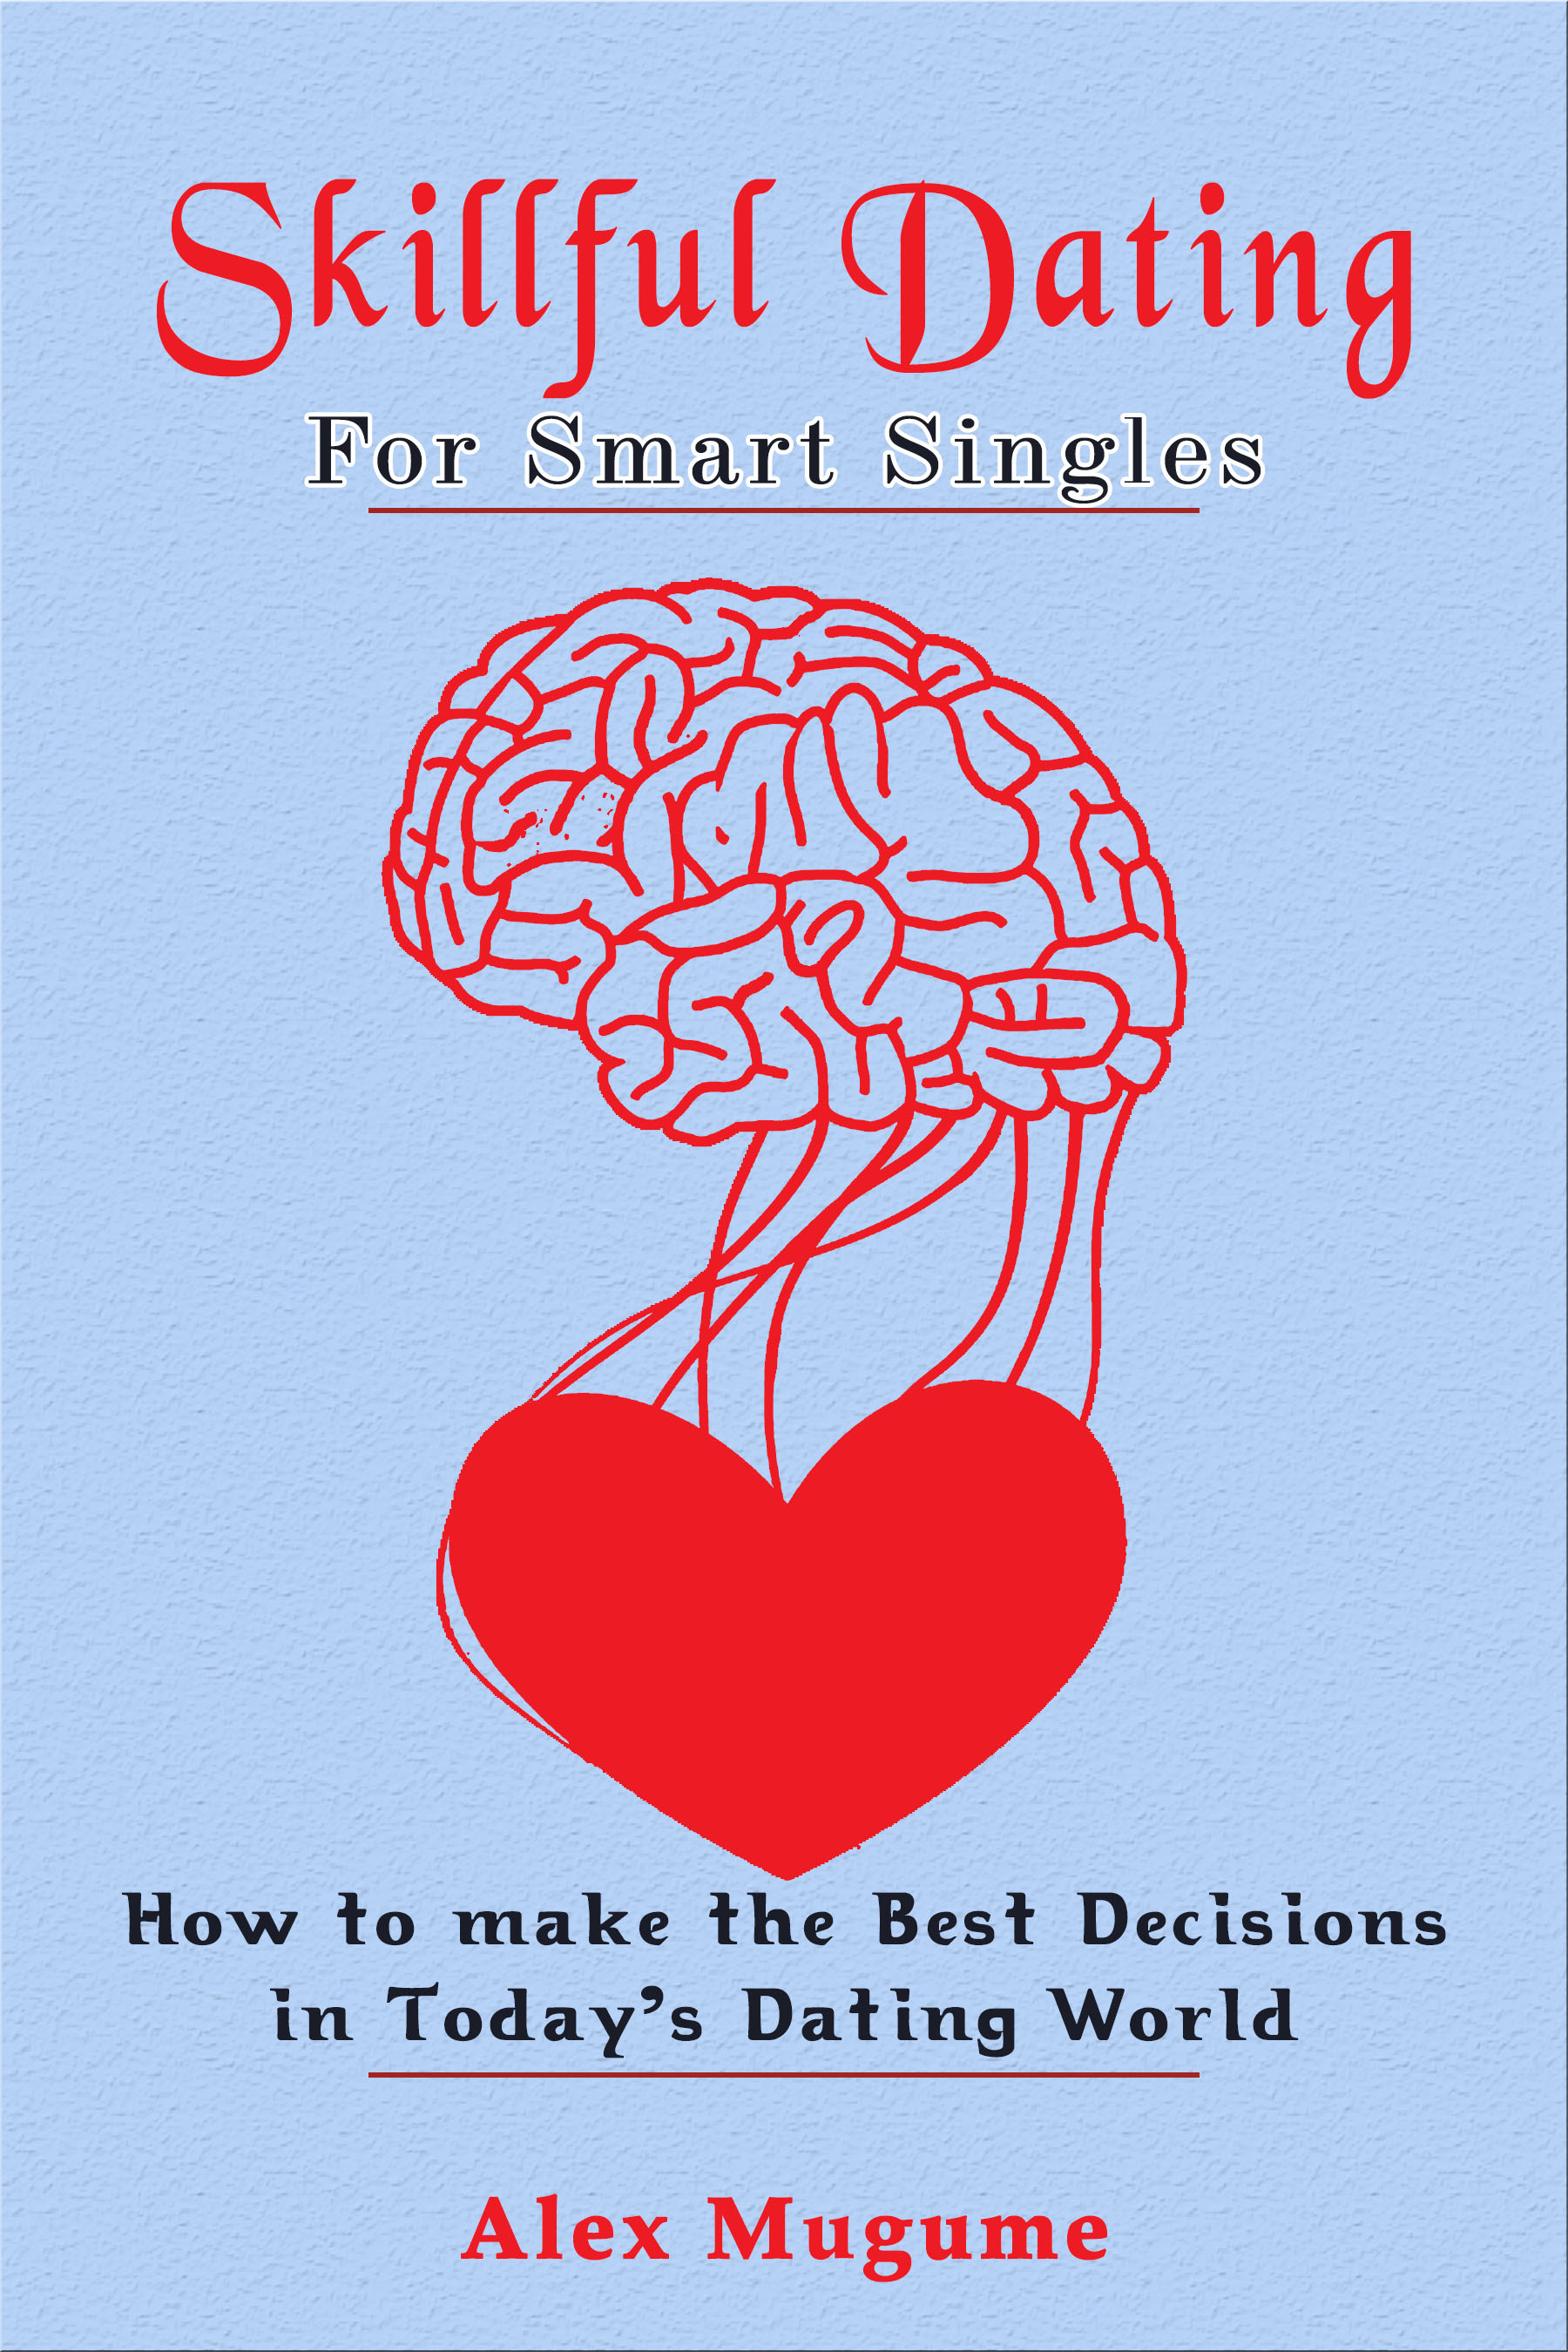 Skillful Dating For Smart Singles, an Ebook by Alex Mugume